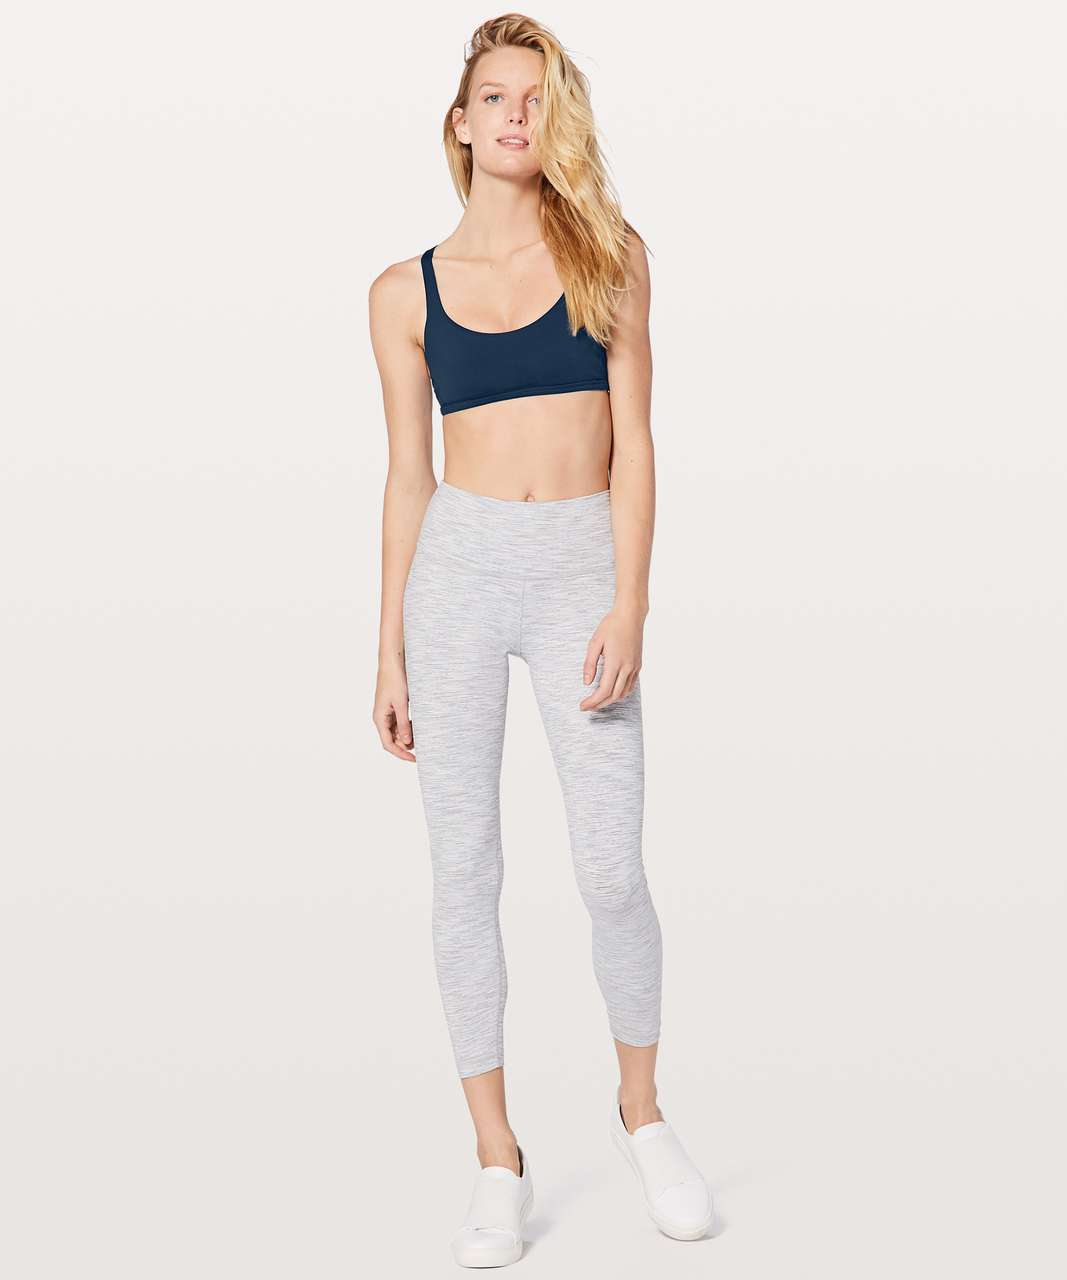 Lululemon Free To Be Zen Bra - Jaded